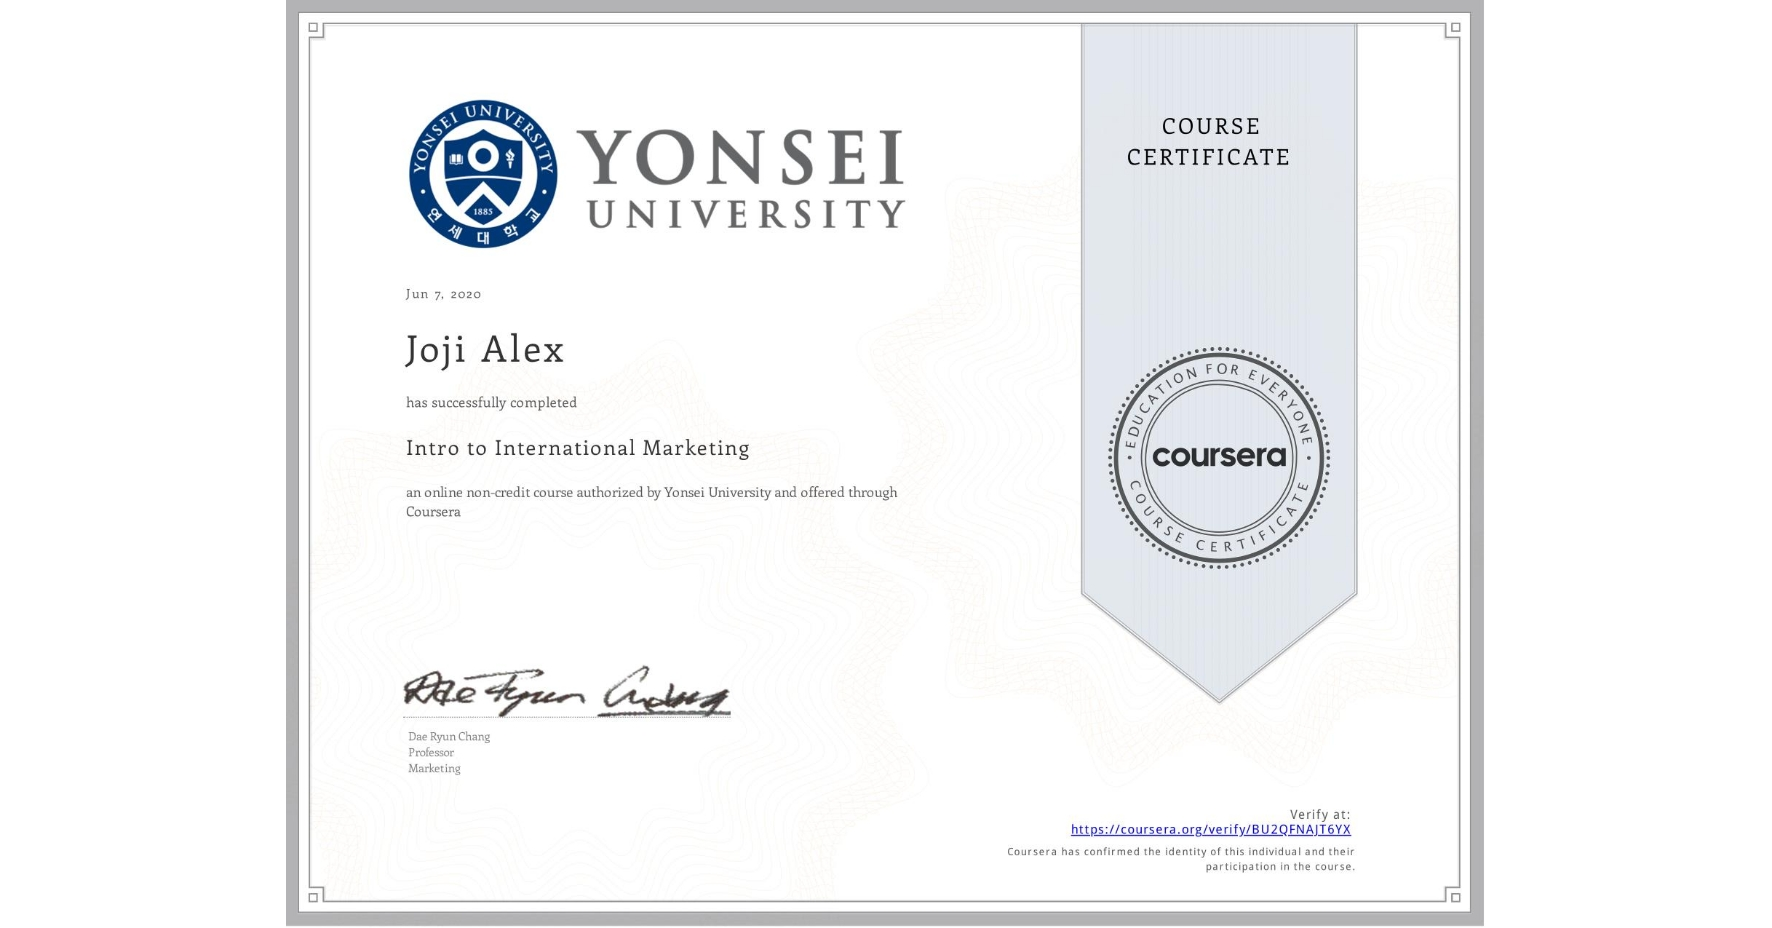 View certificate for Joji Alex, Intro to International Marketing, an online non-credit course authorized by Yonsei University and offered through Coursera